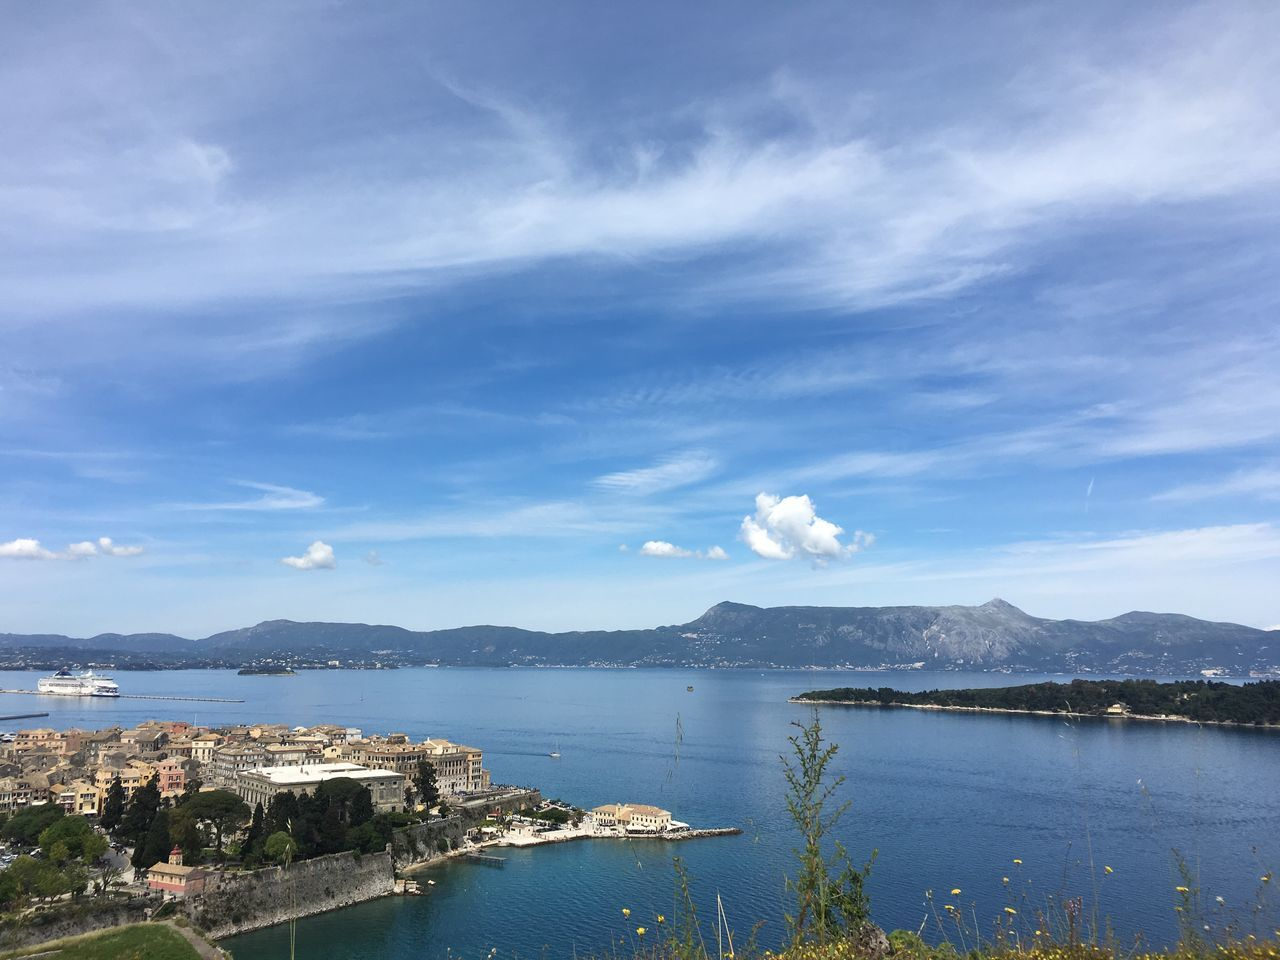 View of mountains and island from the Old Fortress, Corfu Town Beauty In Nature Blue Calm Cloud On The Way Coastline Corfu Town Day Idyllic Landscape Mountain Mountain Range Nature No People Non-urban Scene Ocean Outdoors Remote Scenics Sky Town Tranquil Scene Tranquility View From Old Fortress Water